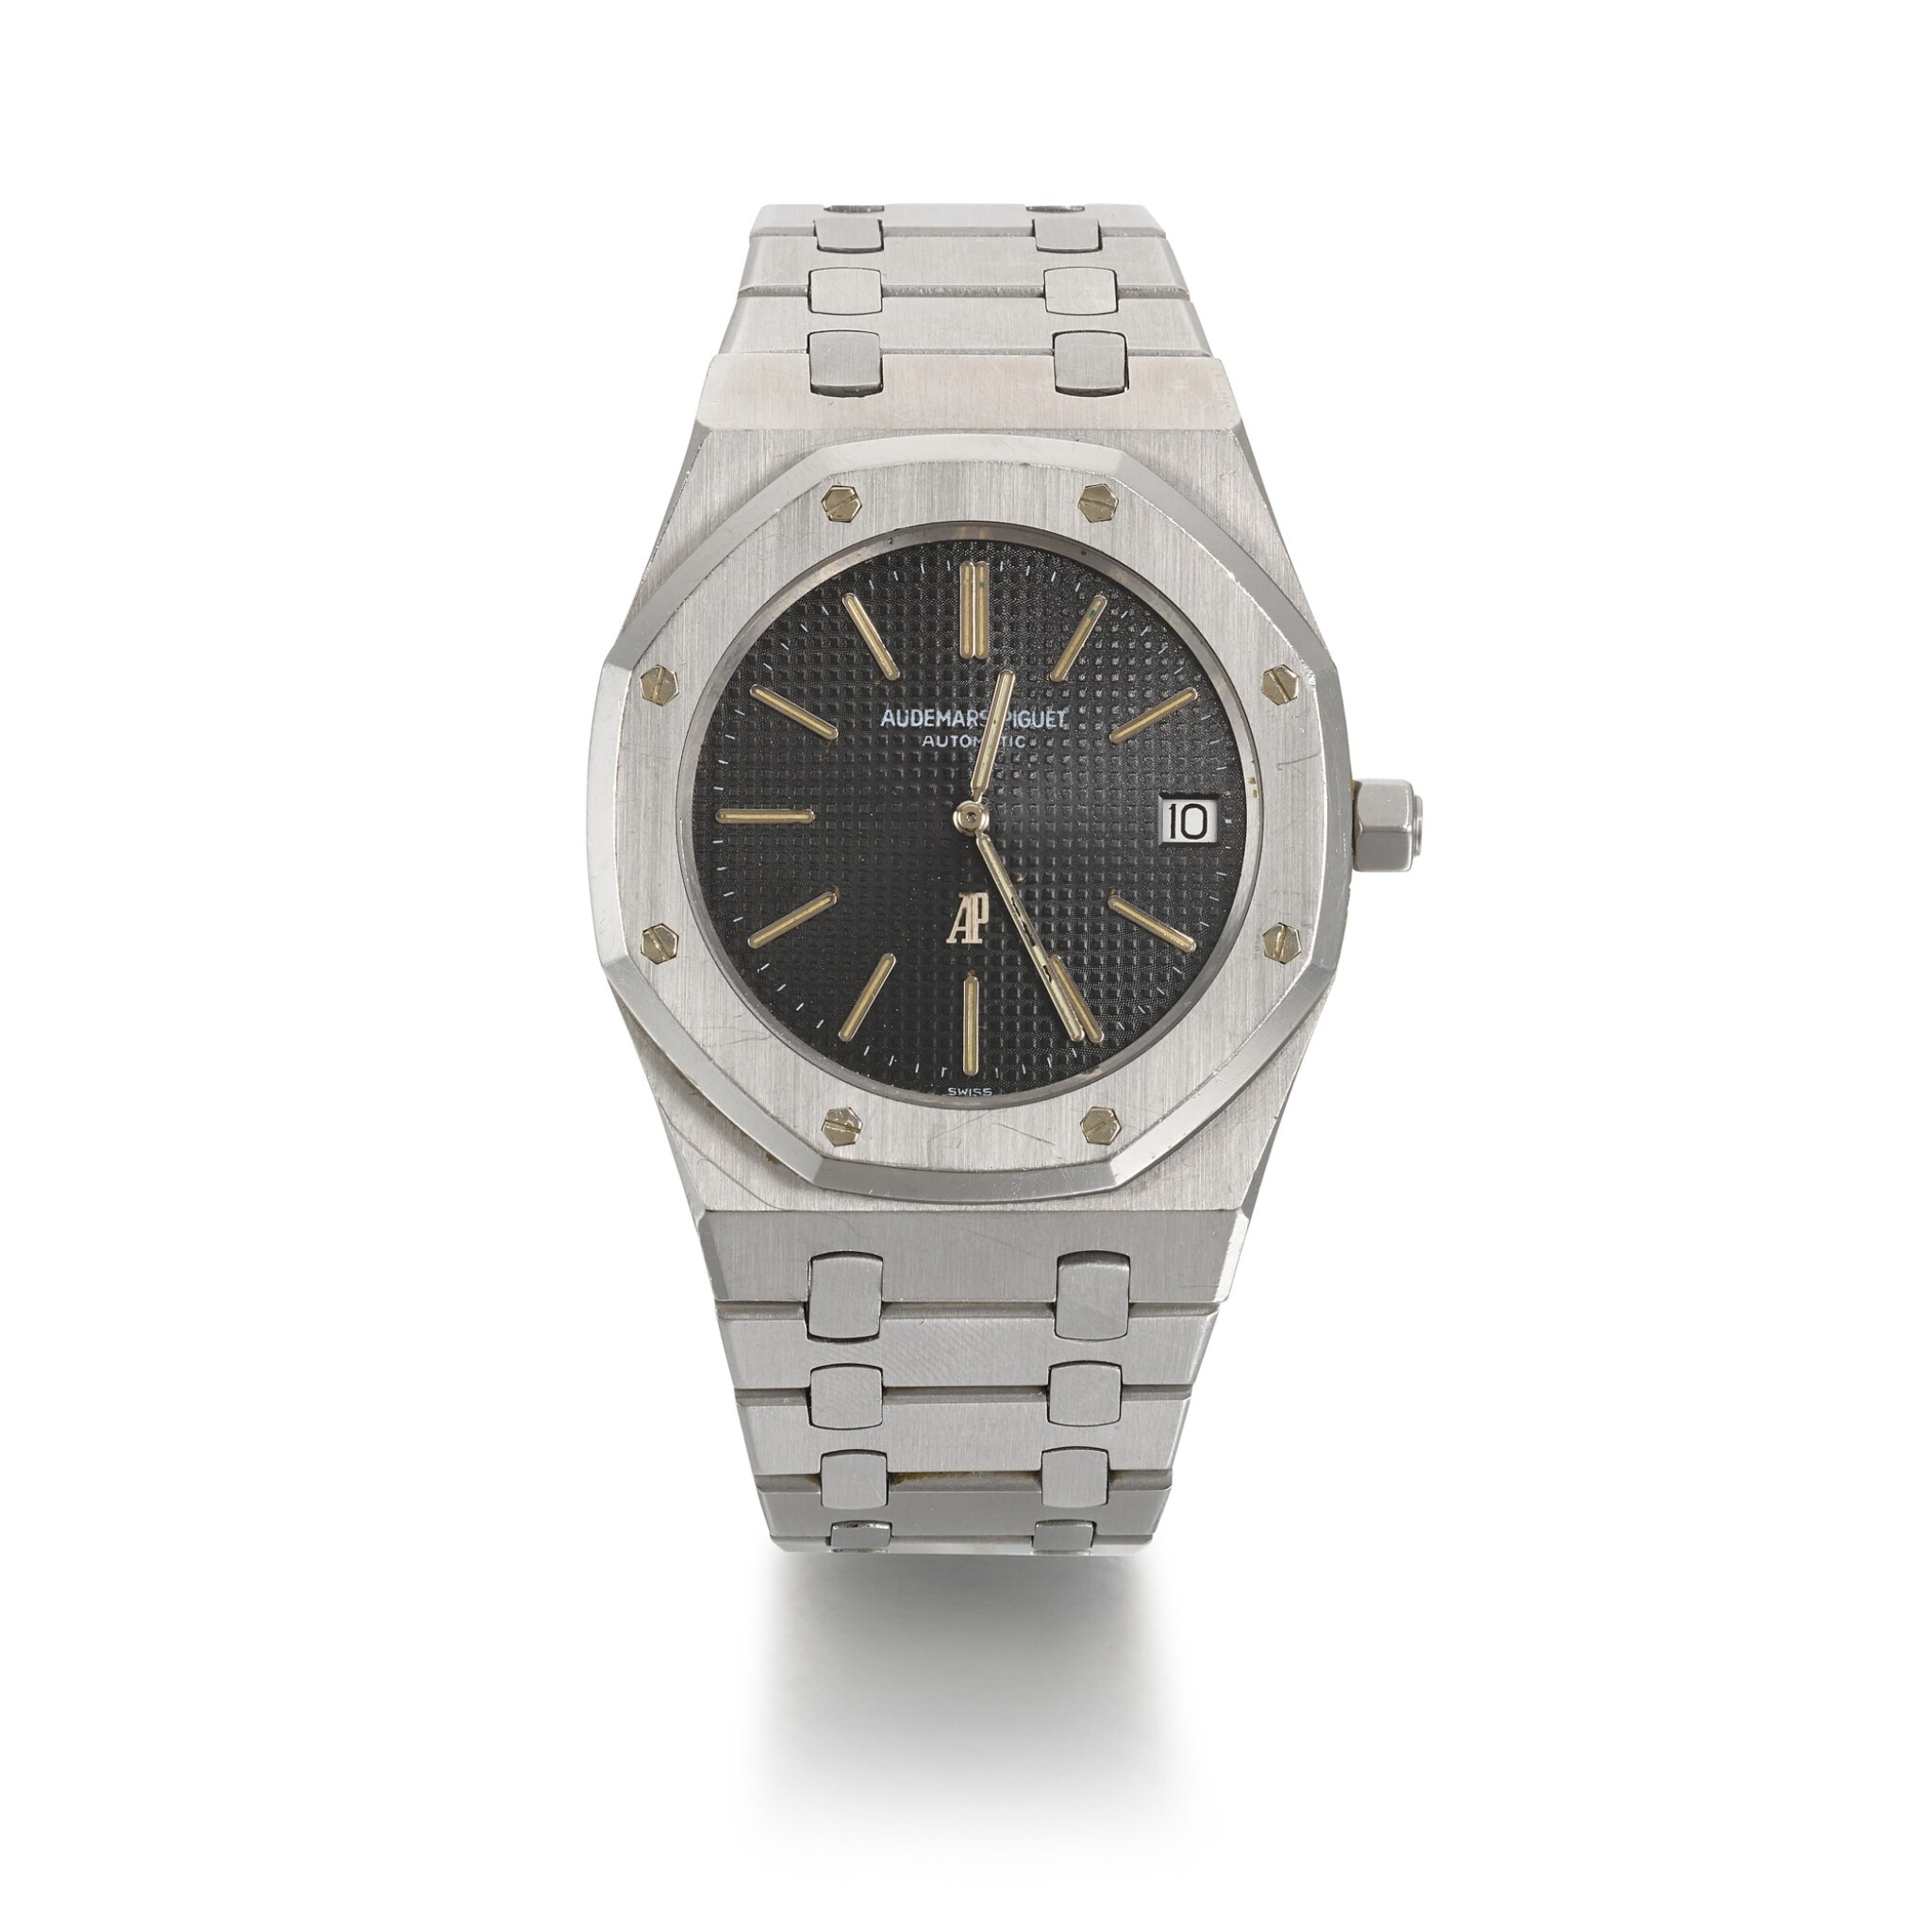 View full screen - View 1 of Lot 333. AUDEMARS PIGUET   NON SERIES ROYAL OAK REF 5402, STAINLESS STEEL WRISTWATCH WITH DATE AND BRACELET, CIRCA 1974.